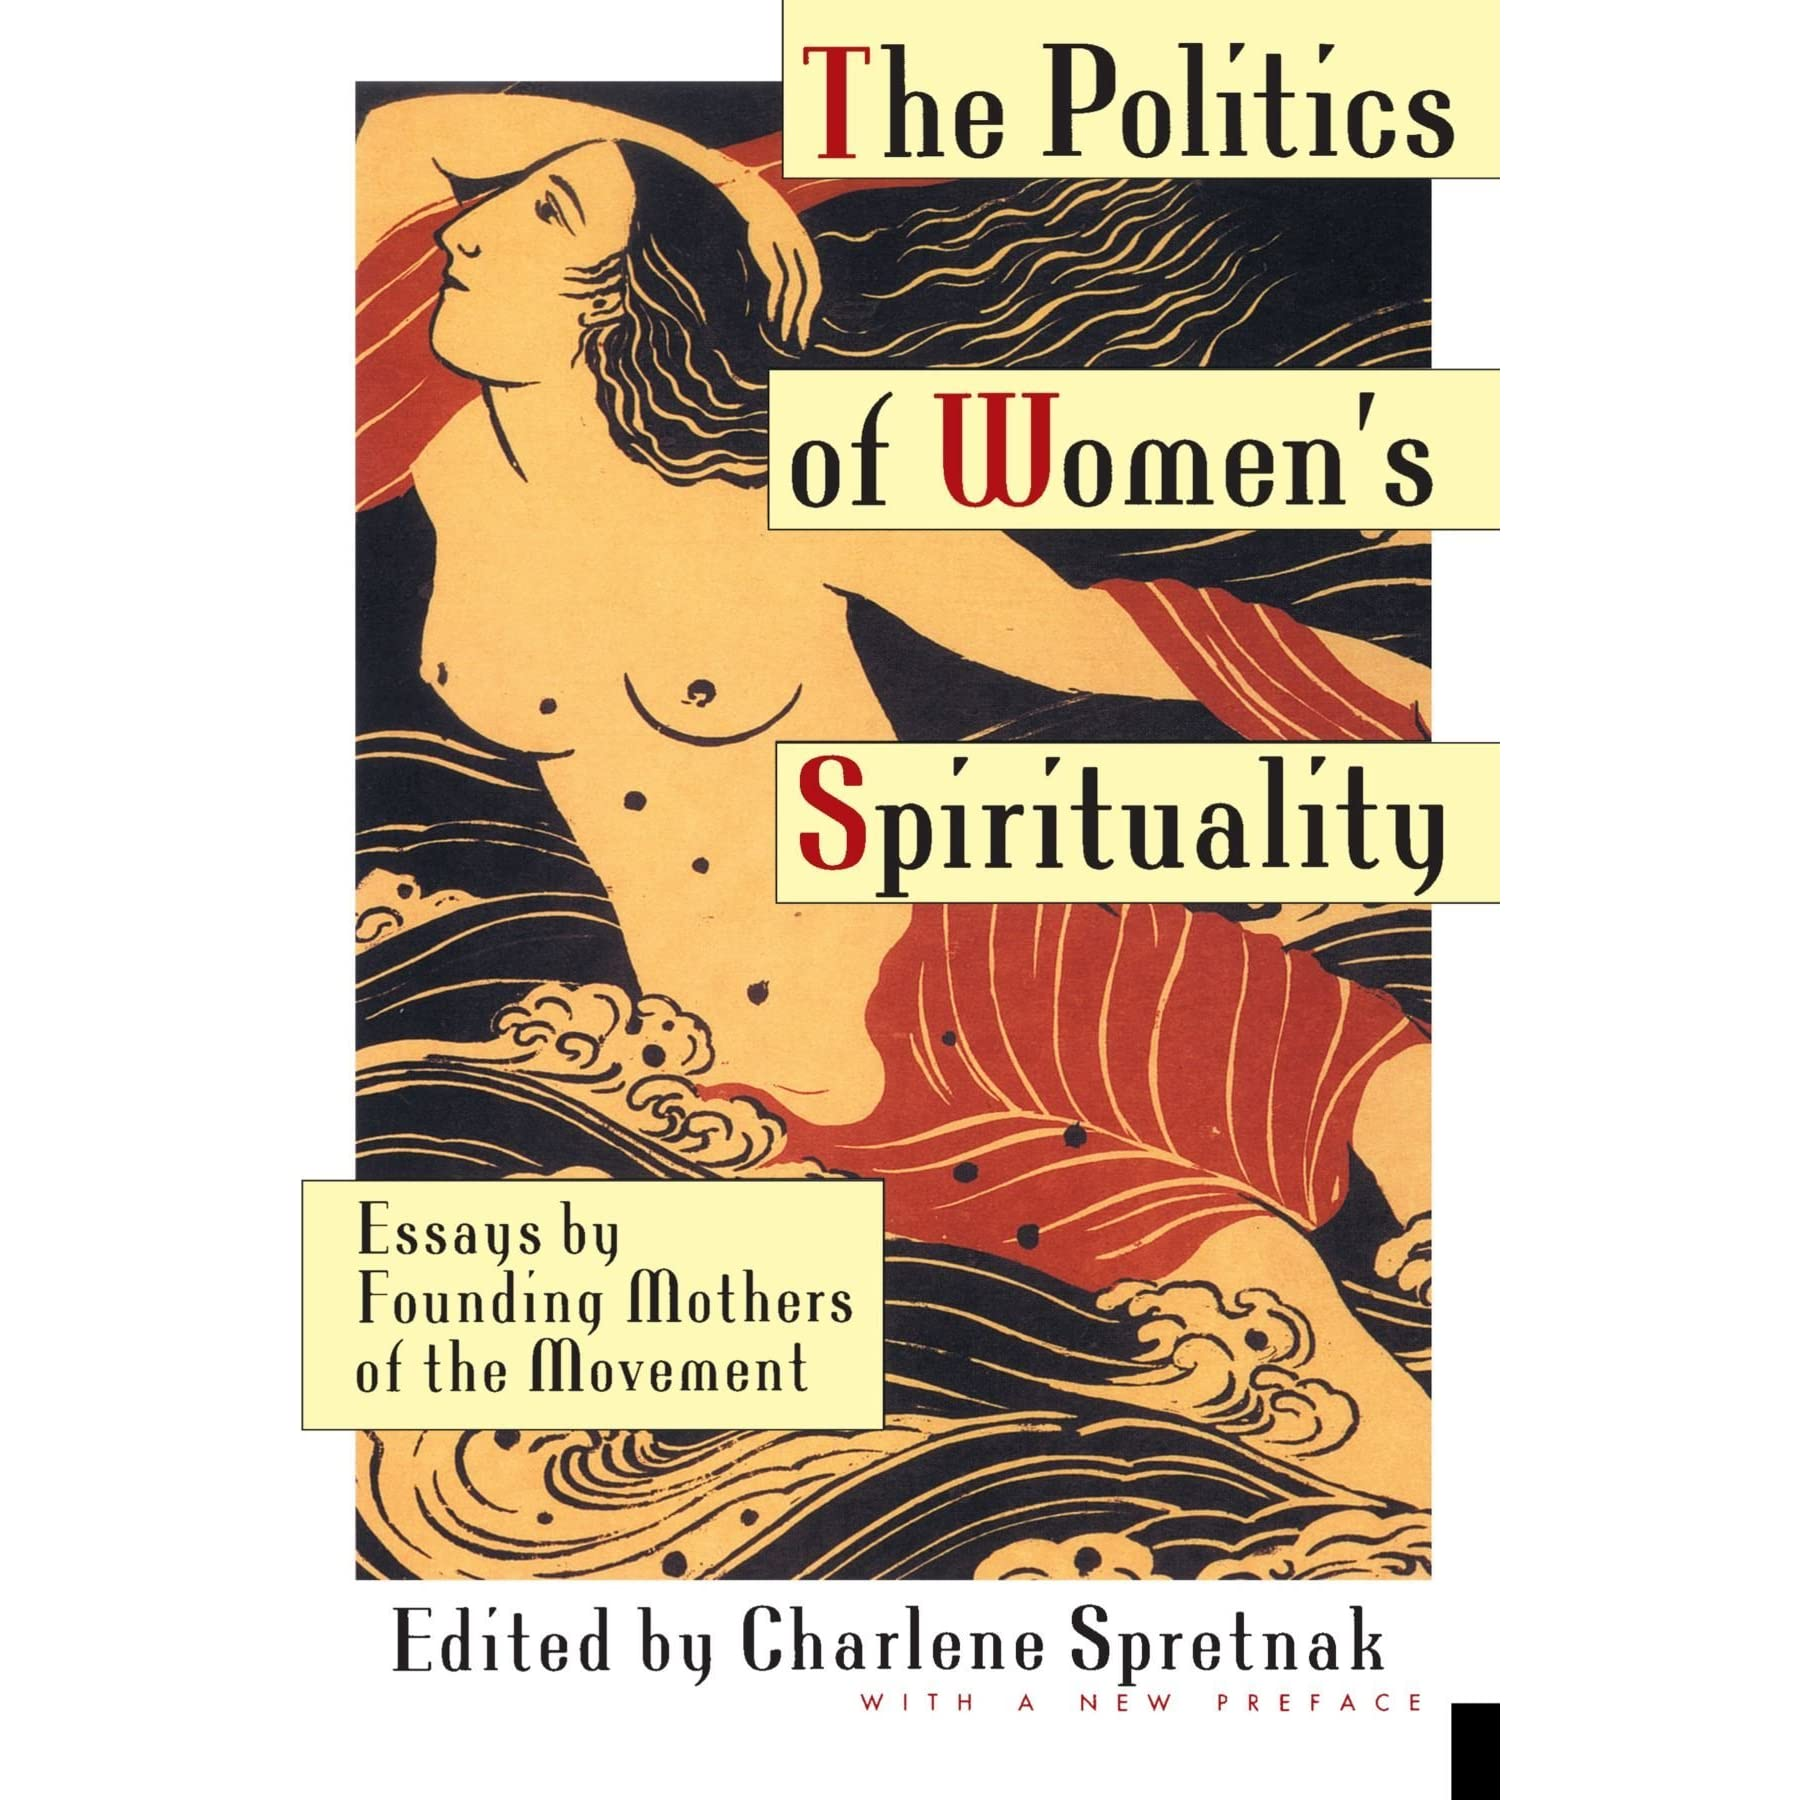 essays on women in politics Women in politics do women have a chance to overcome being head in charge it has been said during the time when men were the bread maker and women were to be the homemakers women have been trying to wear the pants for centuries, whether it be as successful, career or in politics.